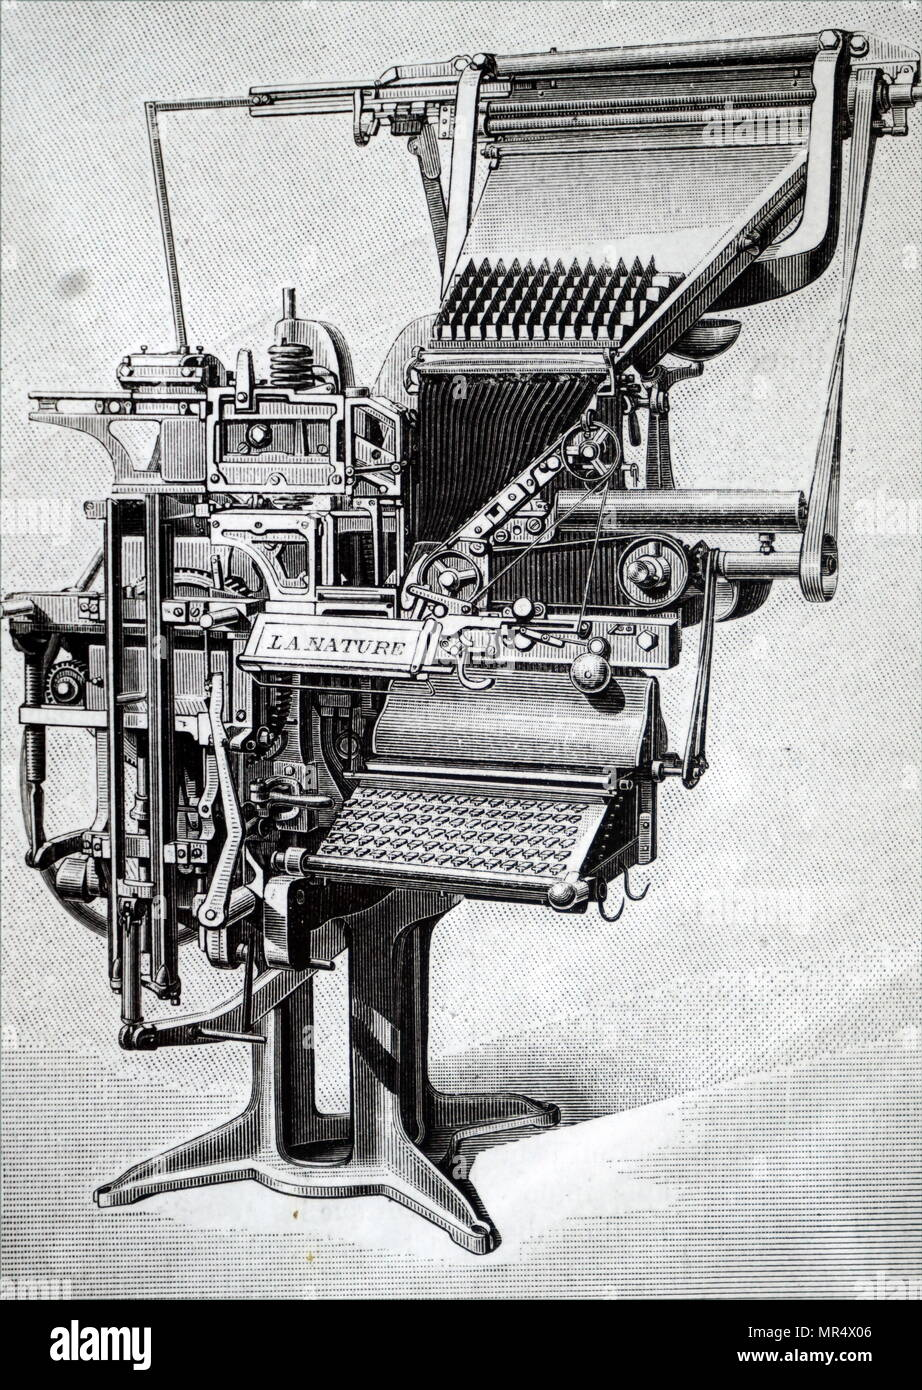 Illustration depicting a Linotype Machine, a composing